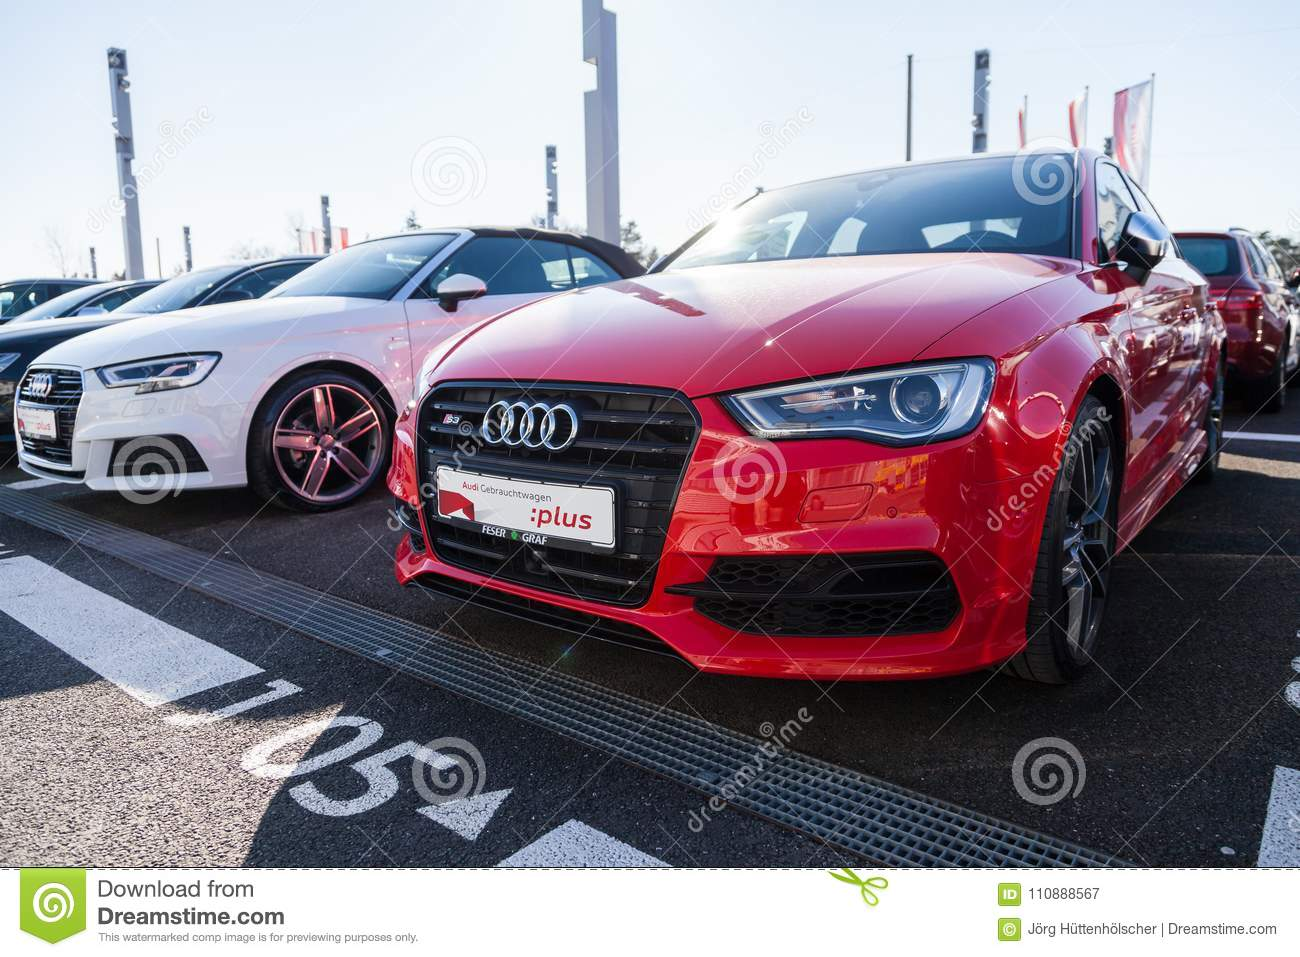 Audi Emblem On An Audi Car Editorial Photography Image Of Concept - Audi car emblem